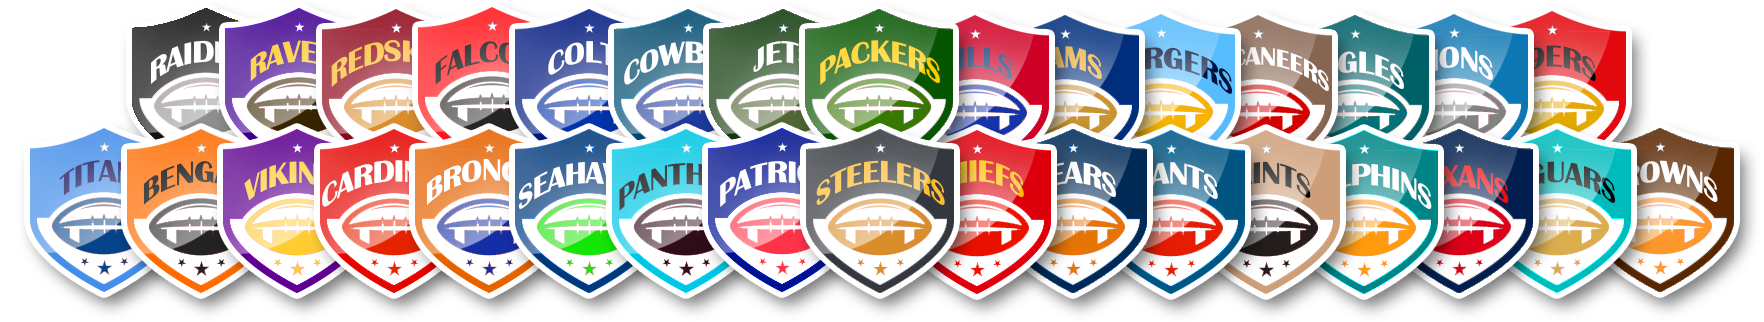 NFL team list